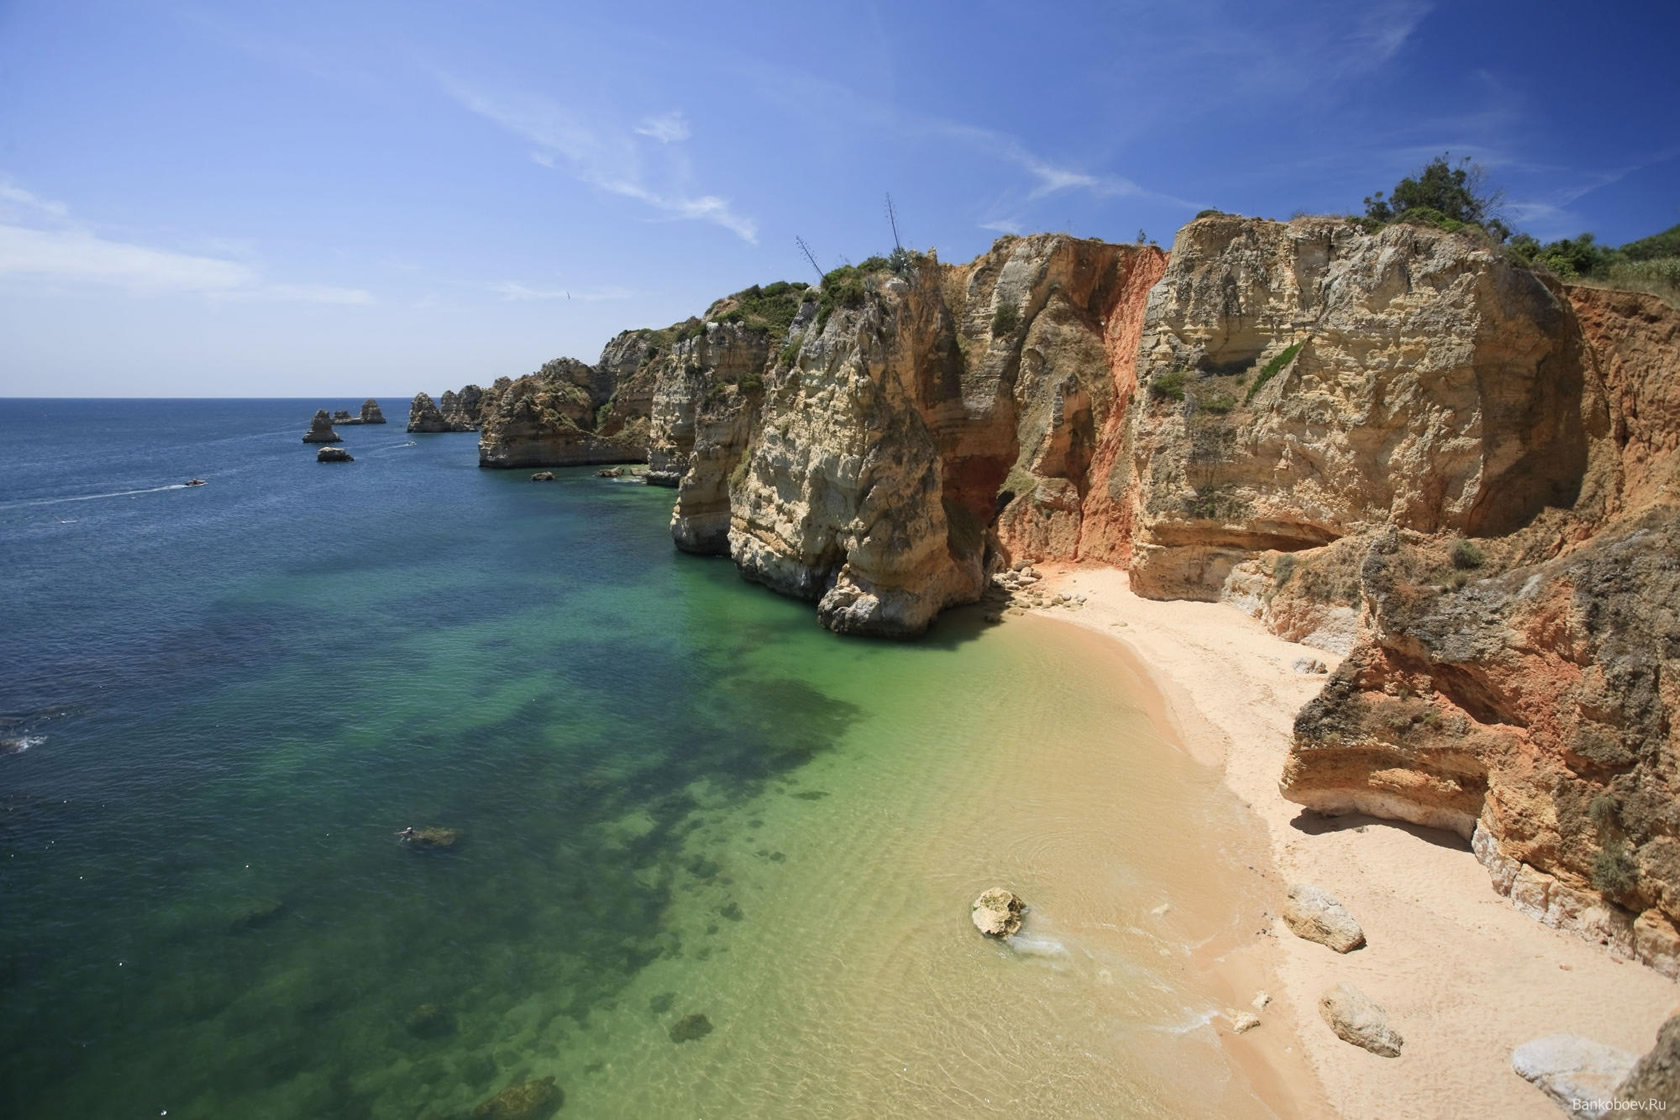 The coastline in Algarve is some of the most beautiful nature of Europe